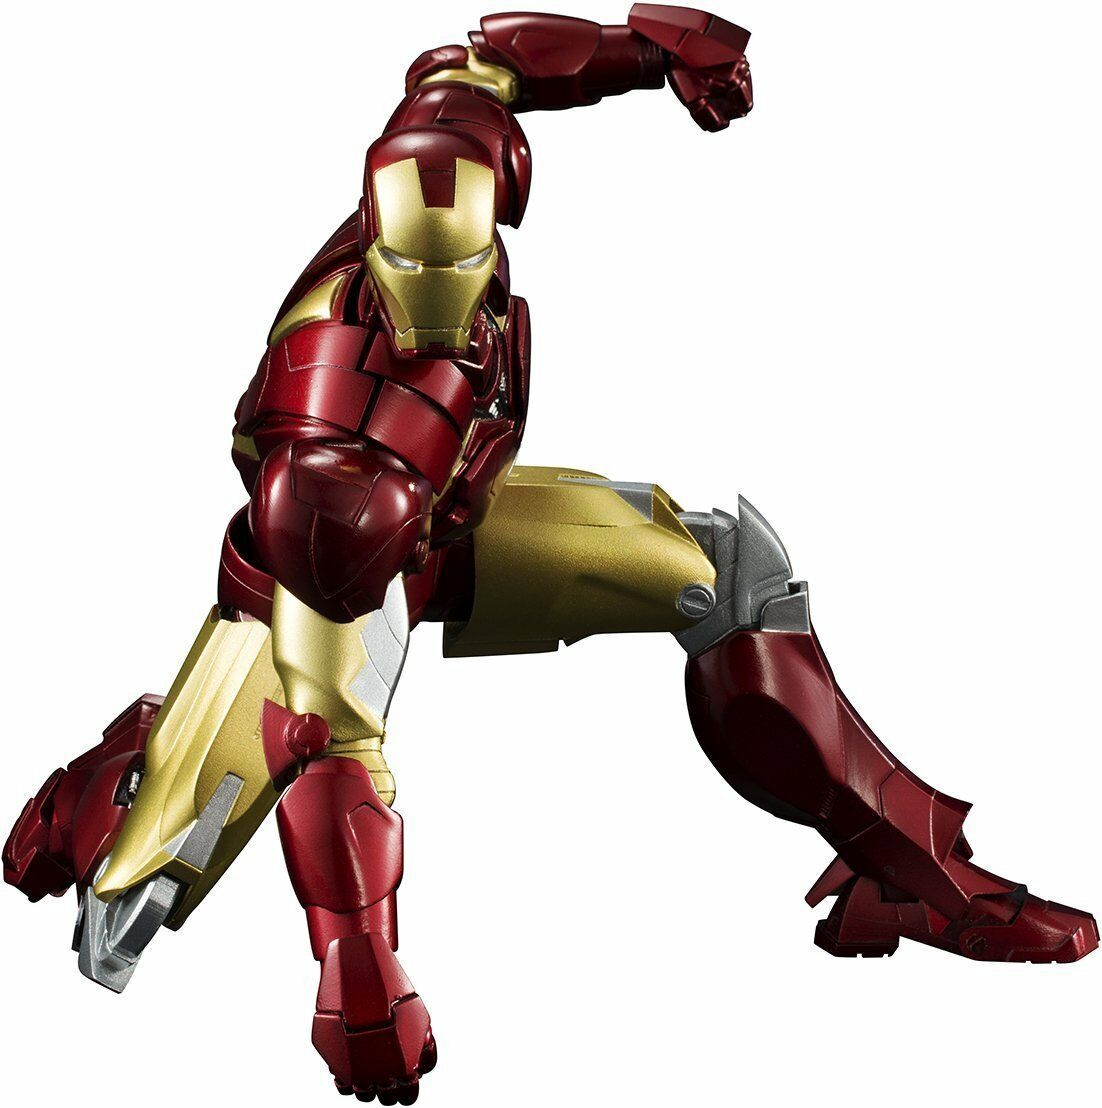 Bandai S.H. FIGUARTS IRON MAN MARK 6 VERSIONE GIAPPONESE